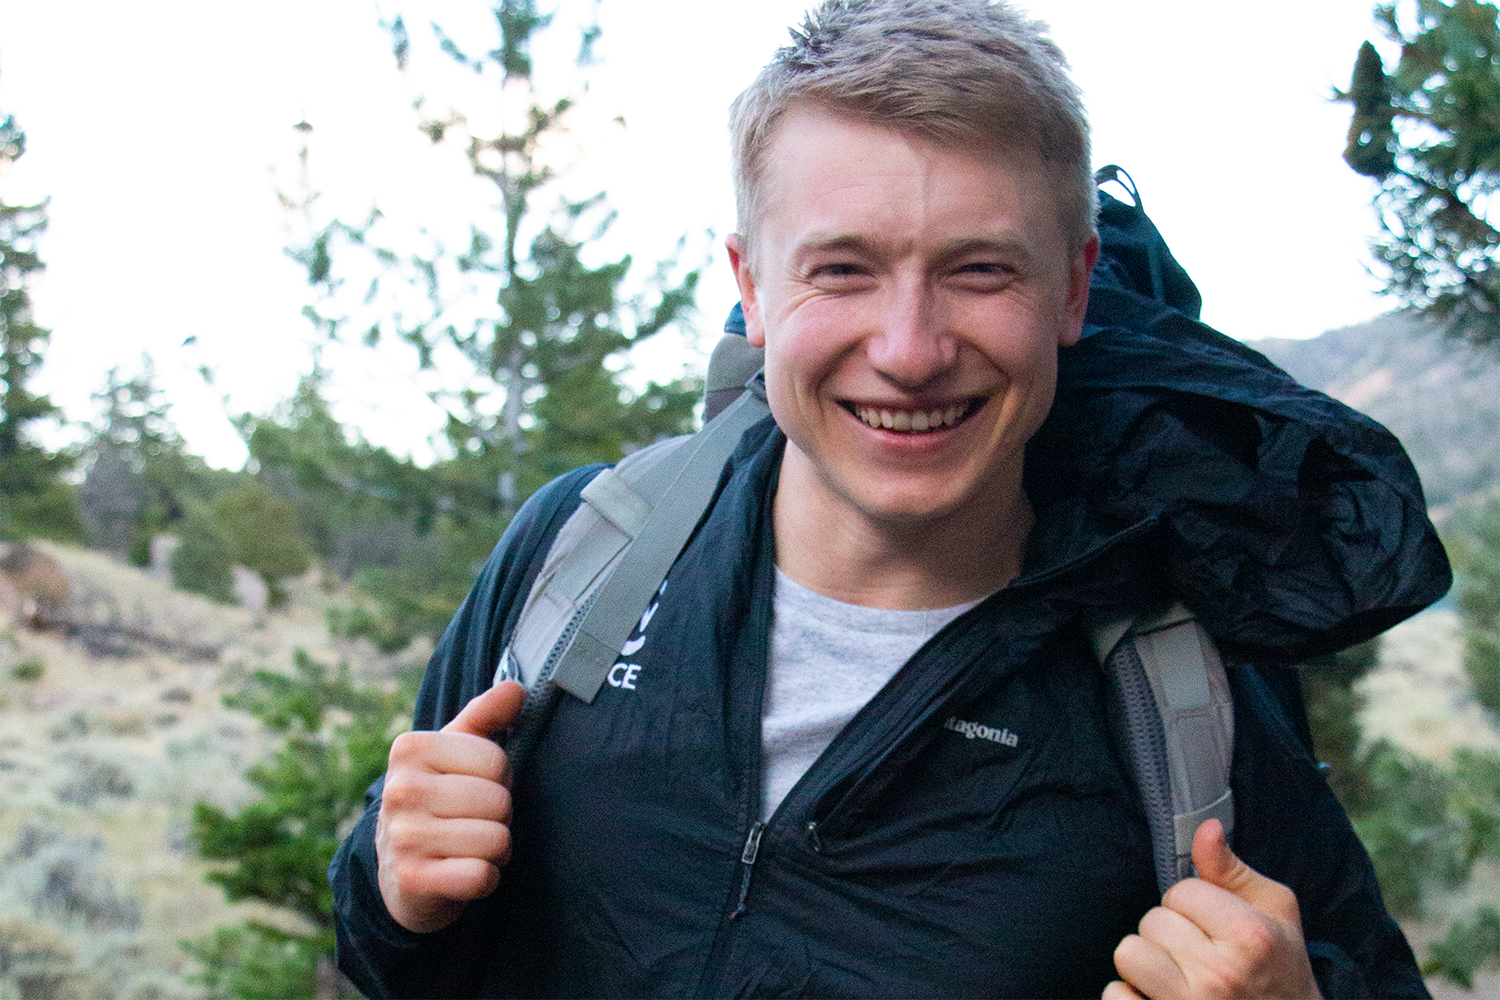 photos of CWC alumnus Marten Bauer wearing a backpack in the woods